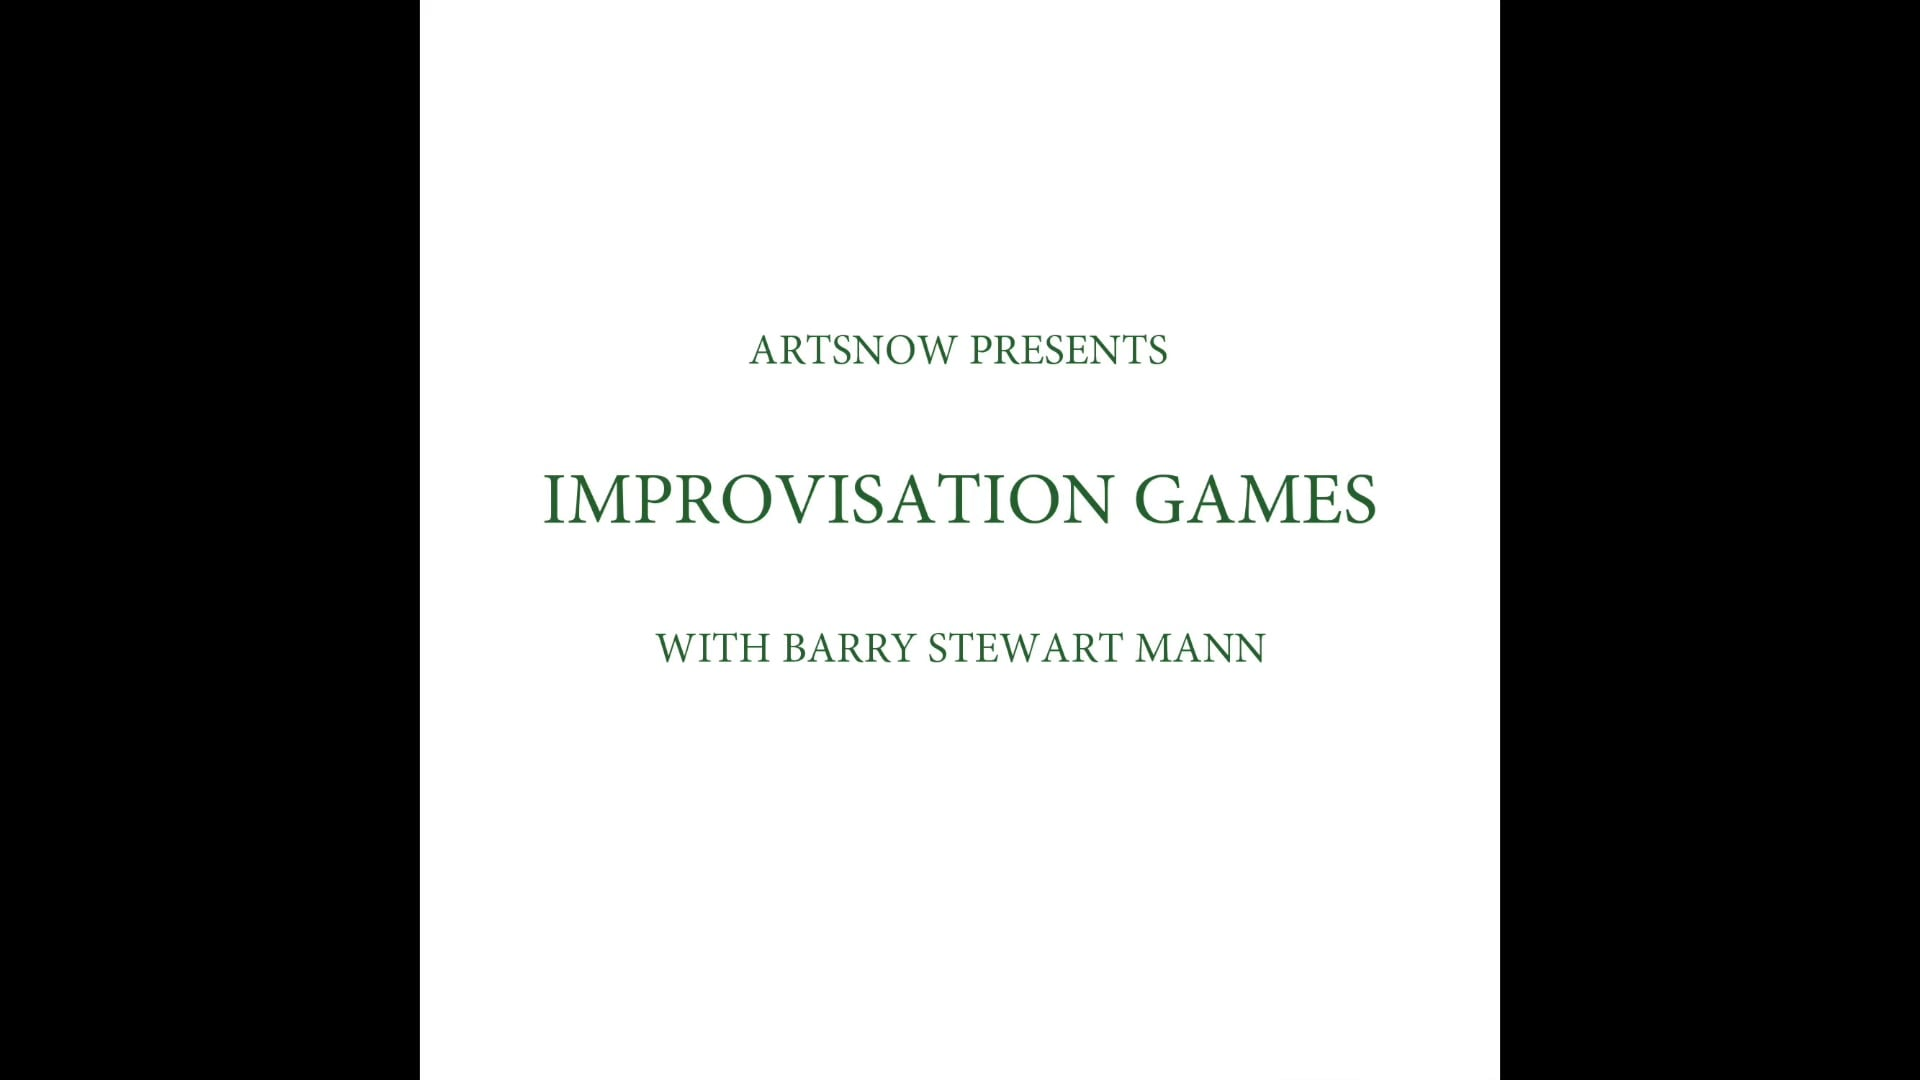 New Digital Ideas: Improvisation Games